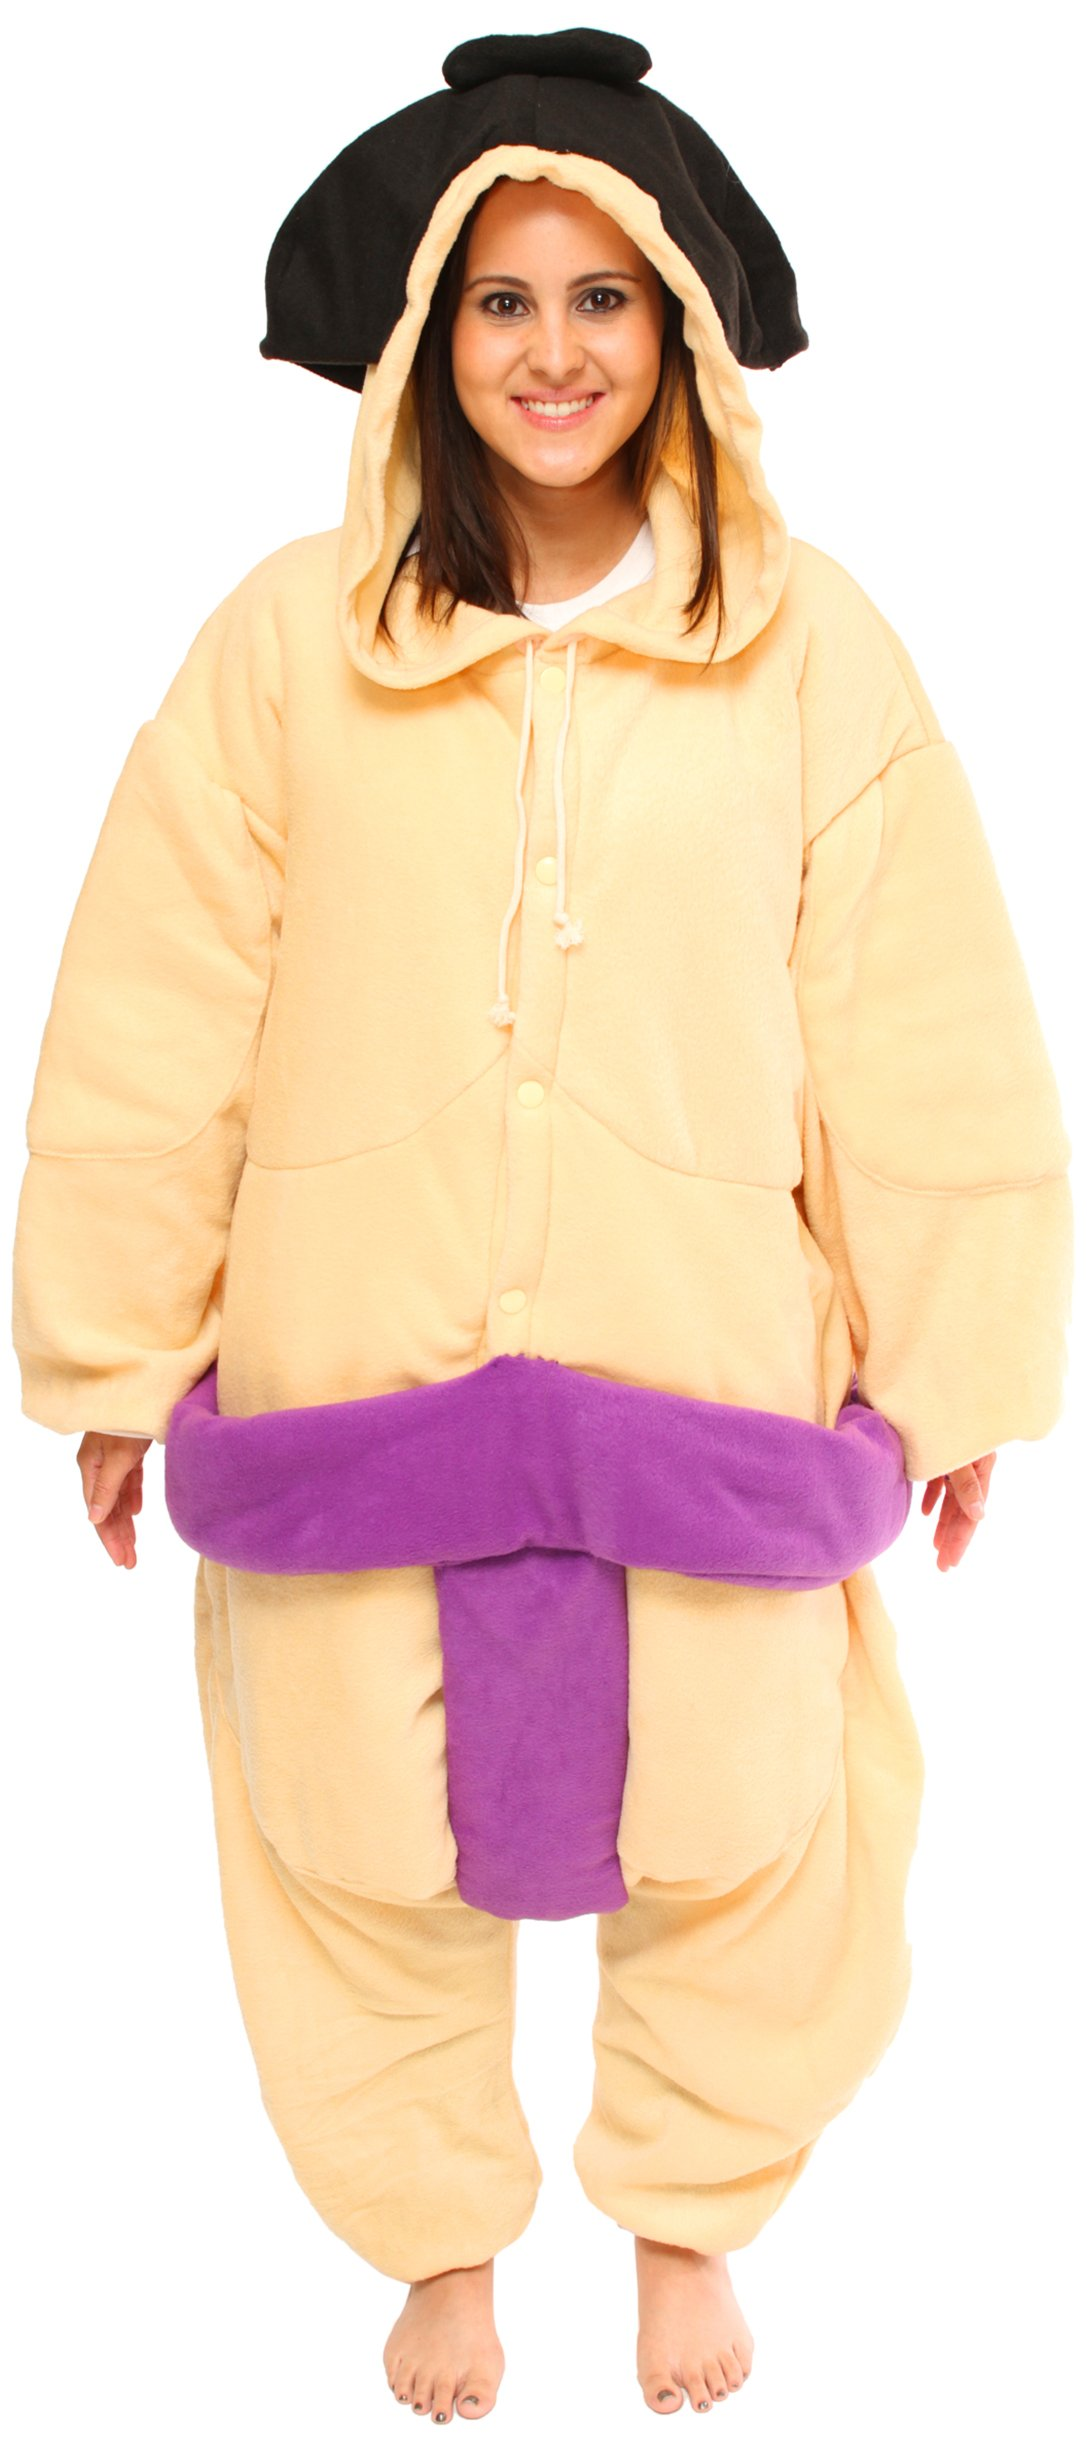 Bcozy Women's Sumo Adult Sized Costumes